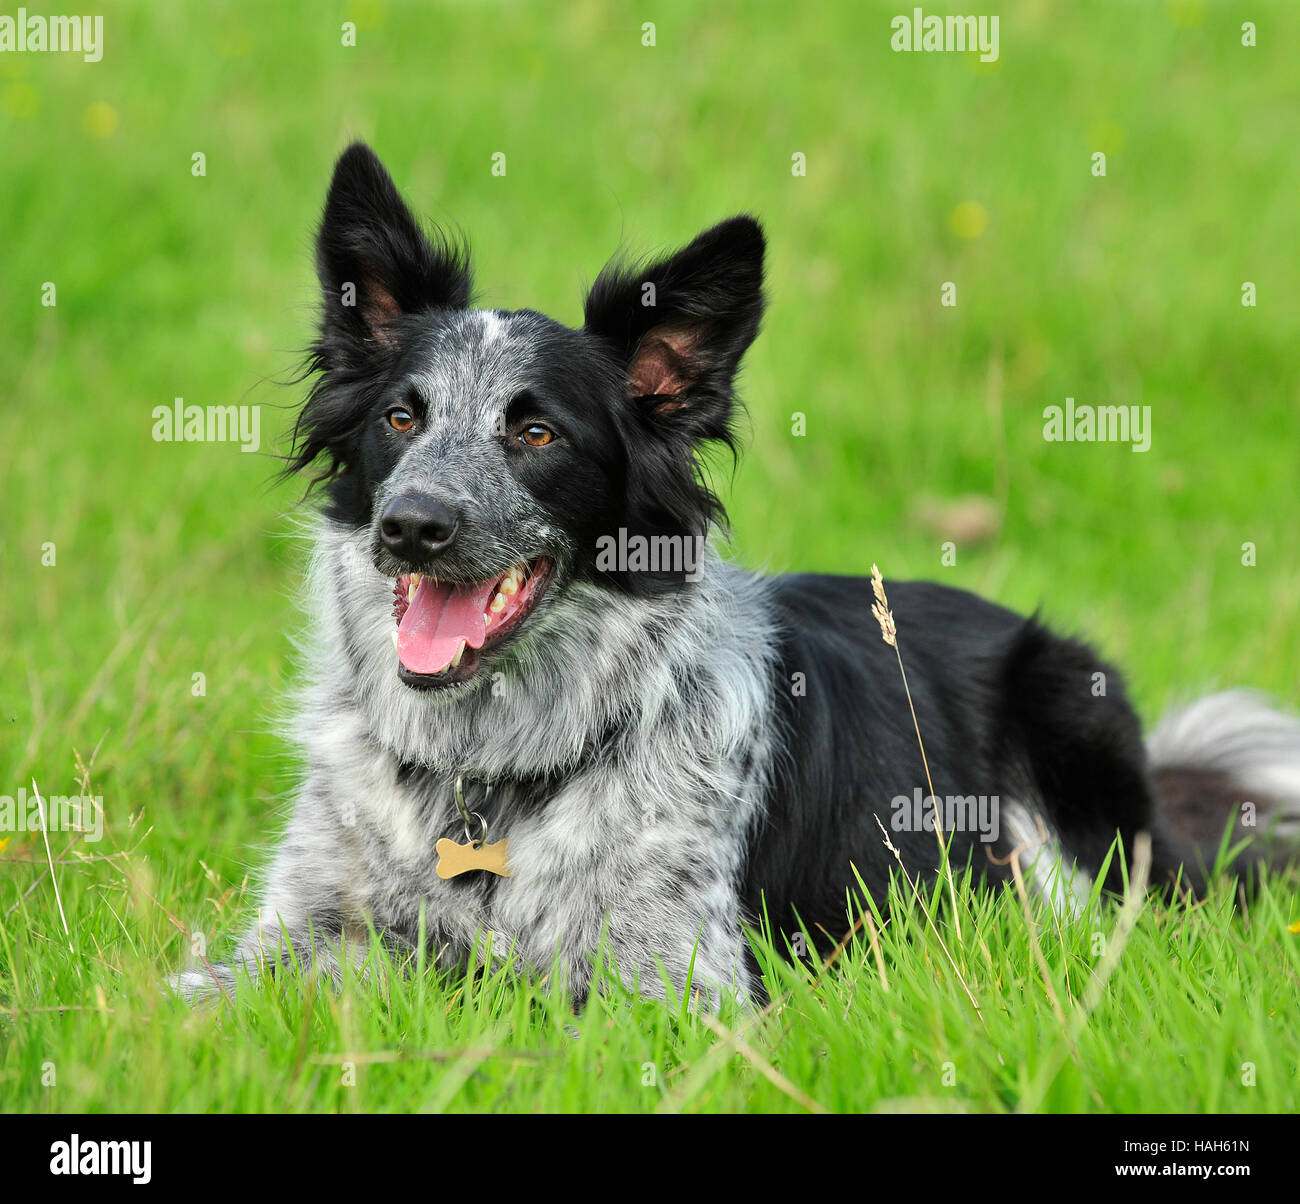 Merle border collie-uk summer Photo Stock